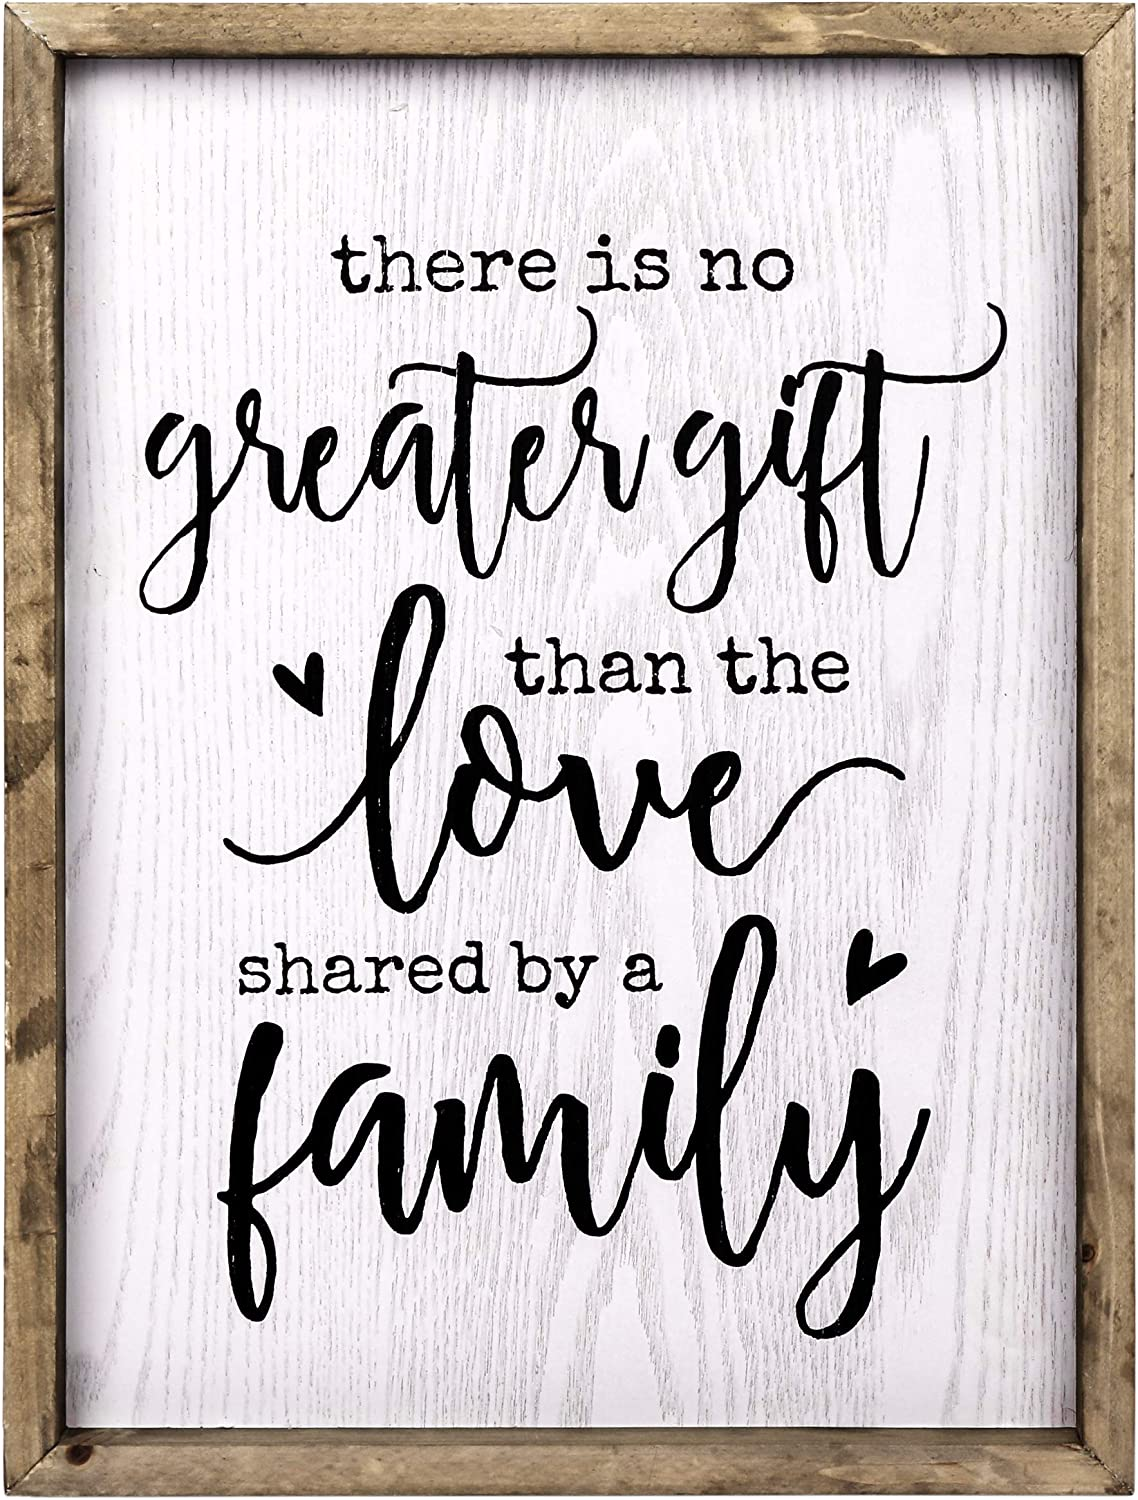 TERESA'S COLLECTIONS Rustic Family Love Sign Wall Hanging Framed Wood Sign for Home Decor Art - No Greater Gift (17 x 13 inch)